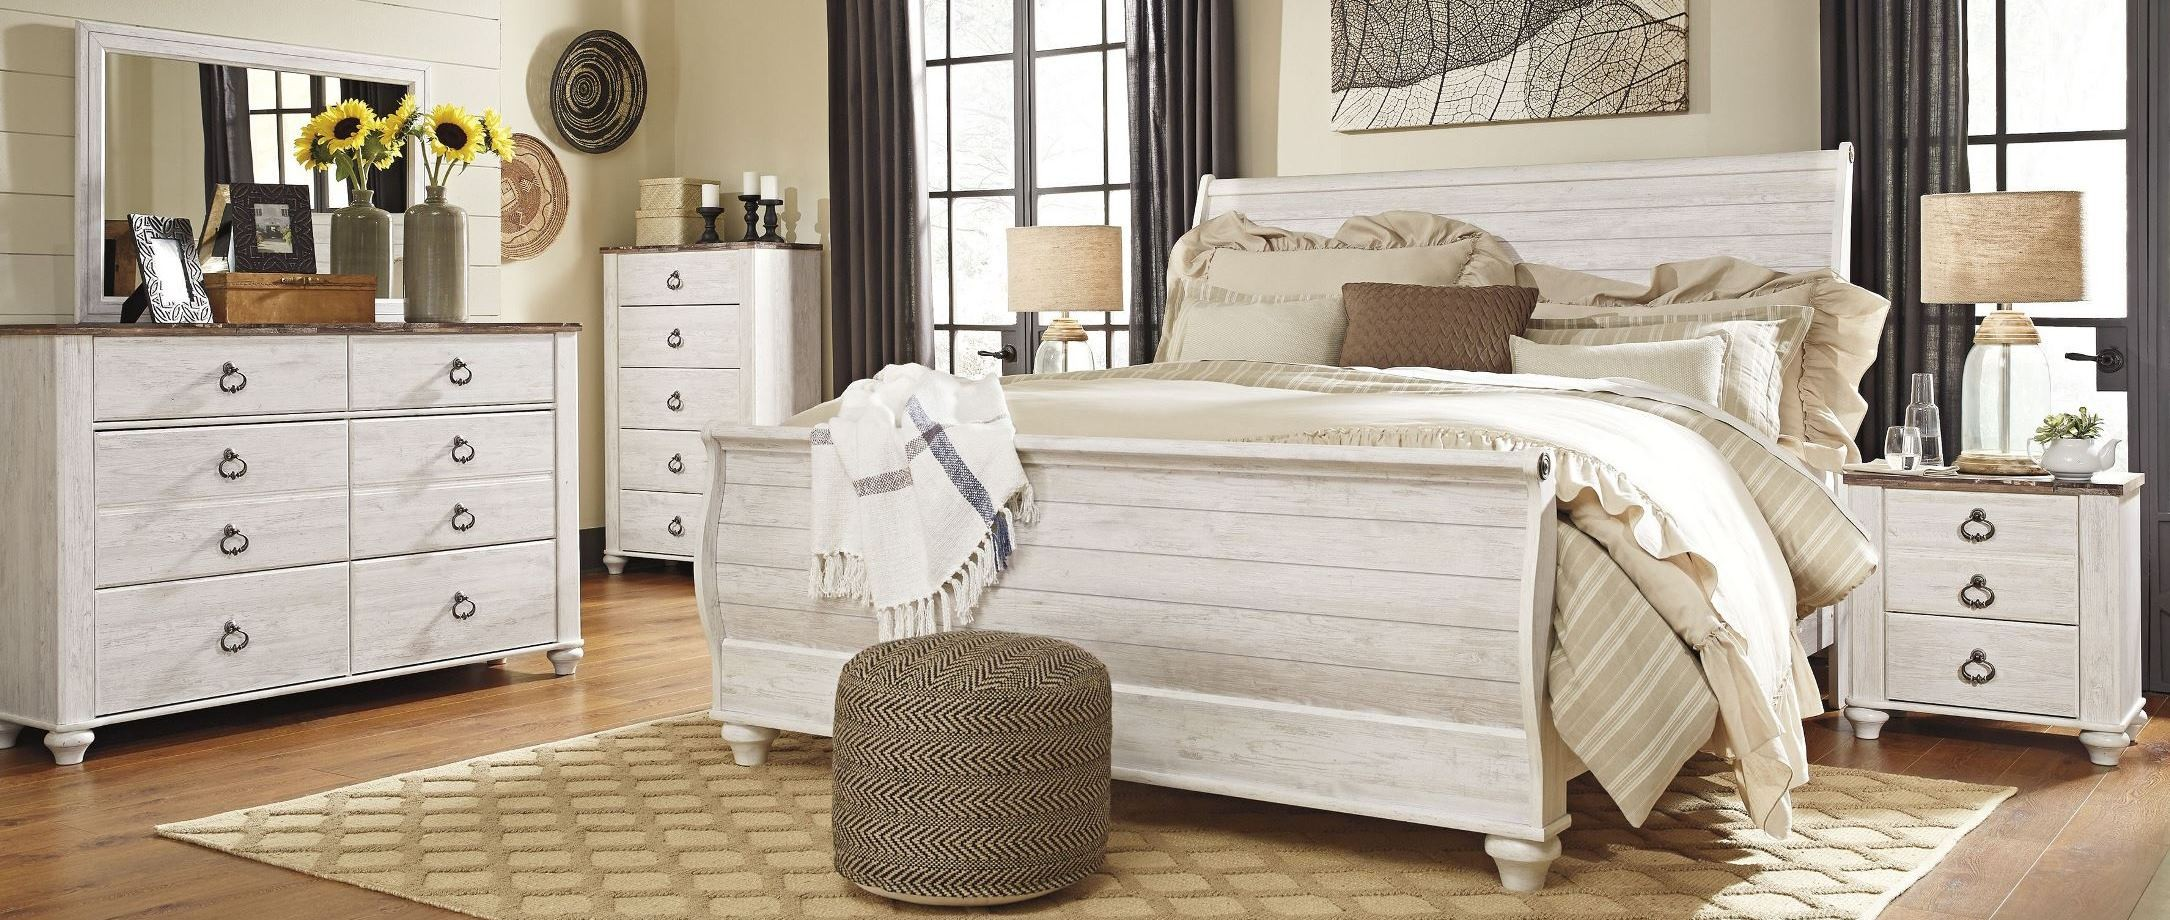 whitewash bedroom furniture willowton whitewash sleigh bedroom set b267 74 77 96 13863